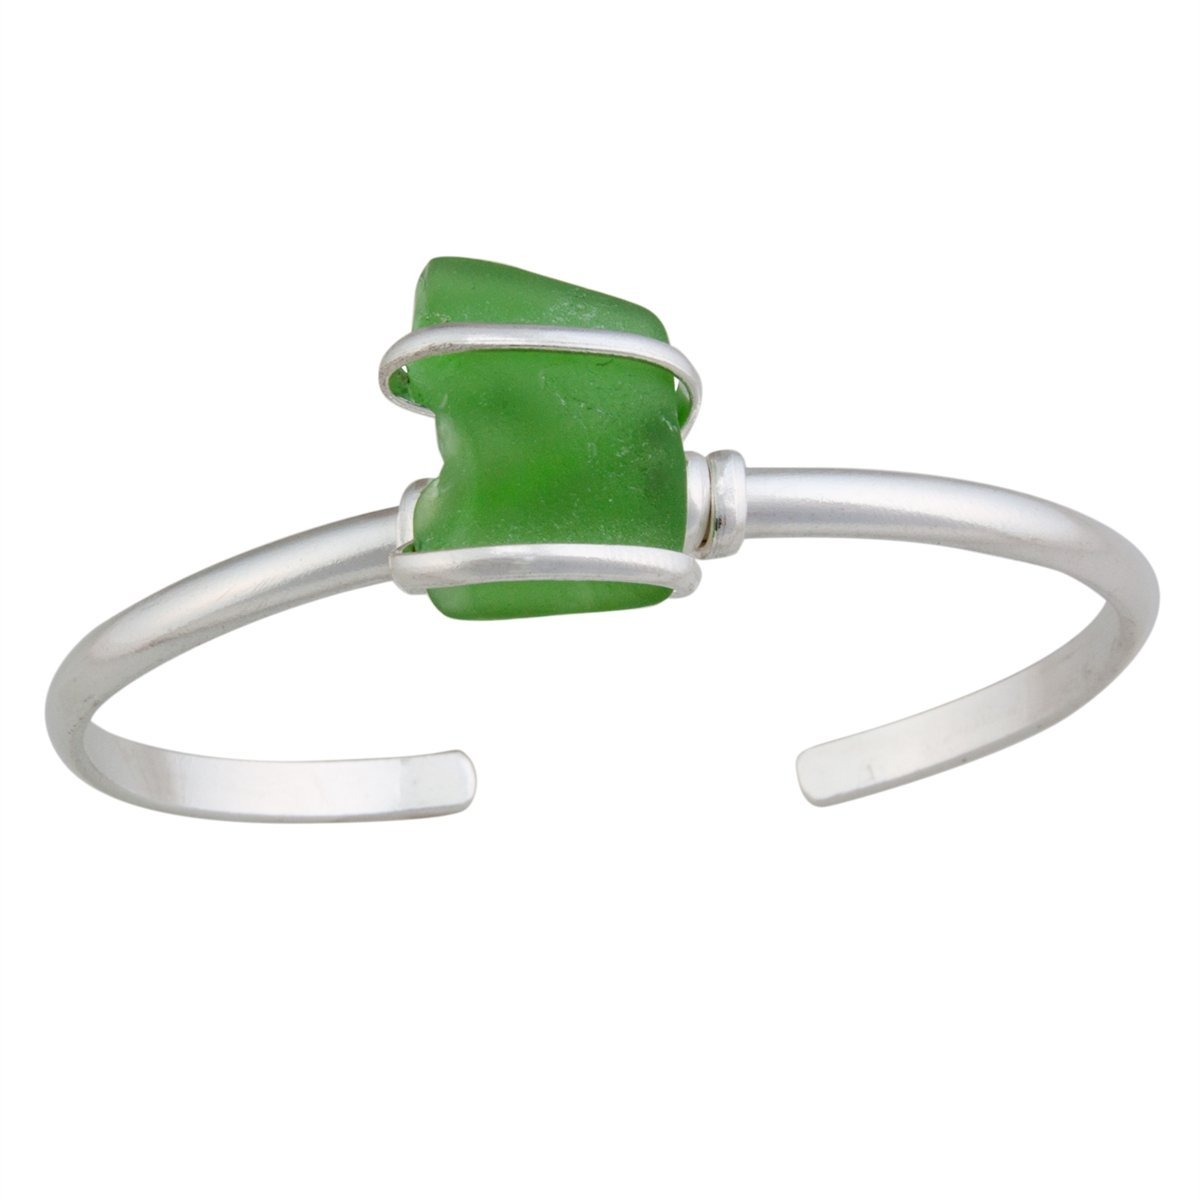 alpaca-recycled-glass-mini-cuff-green - 1 - Charles Albert Inc